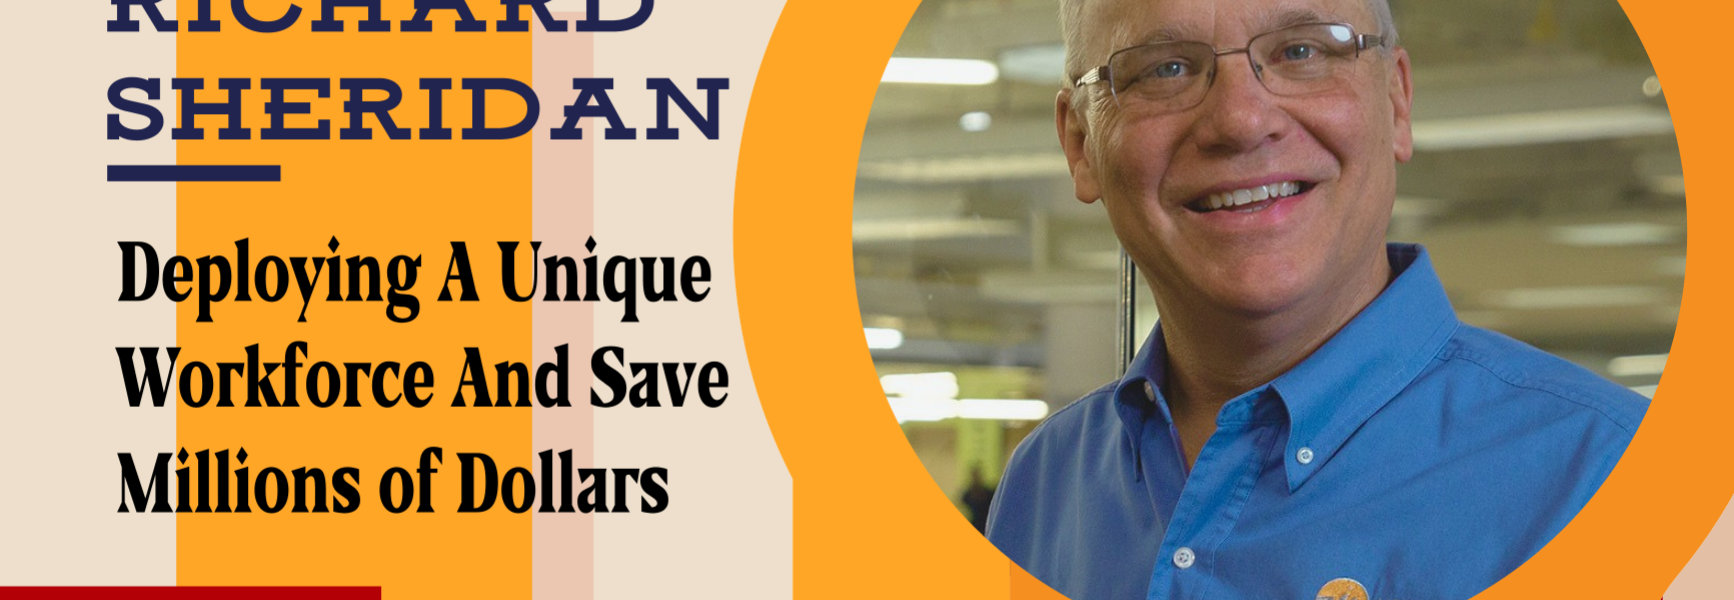 Deploying A Unique Workforce And Save Millions of Dollars with Richard Sheridan